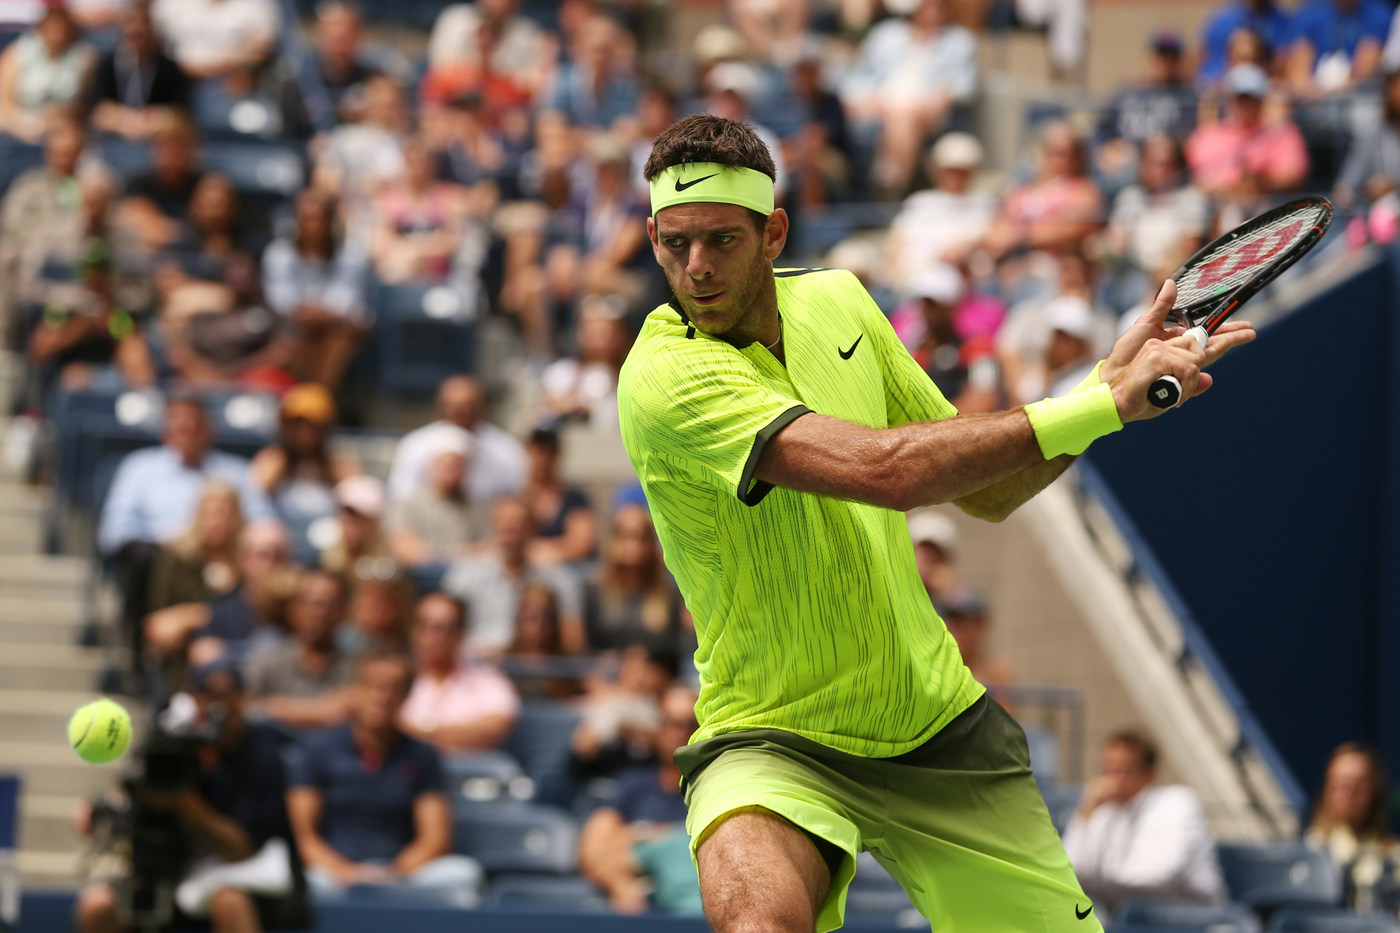 September 5, 2016 - Juan Martin del Potro in action against Dominic Thiem during the 2016 US Open at the USTA Billie Jean King National Tennis Center in Flushing, NY.